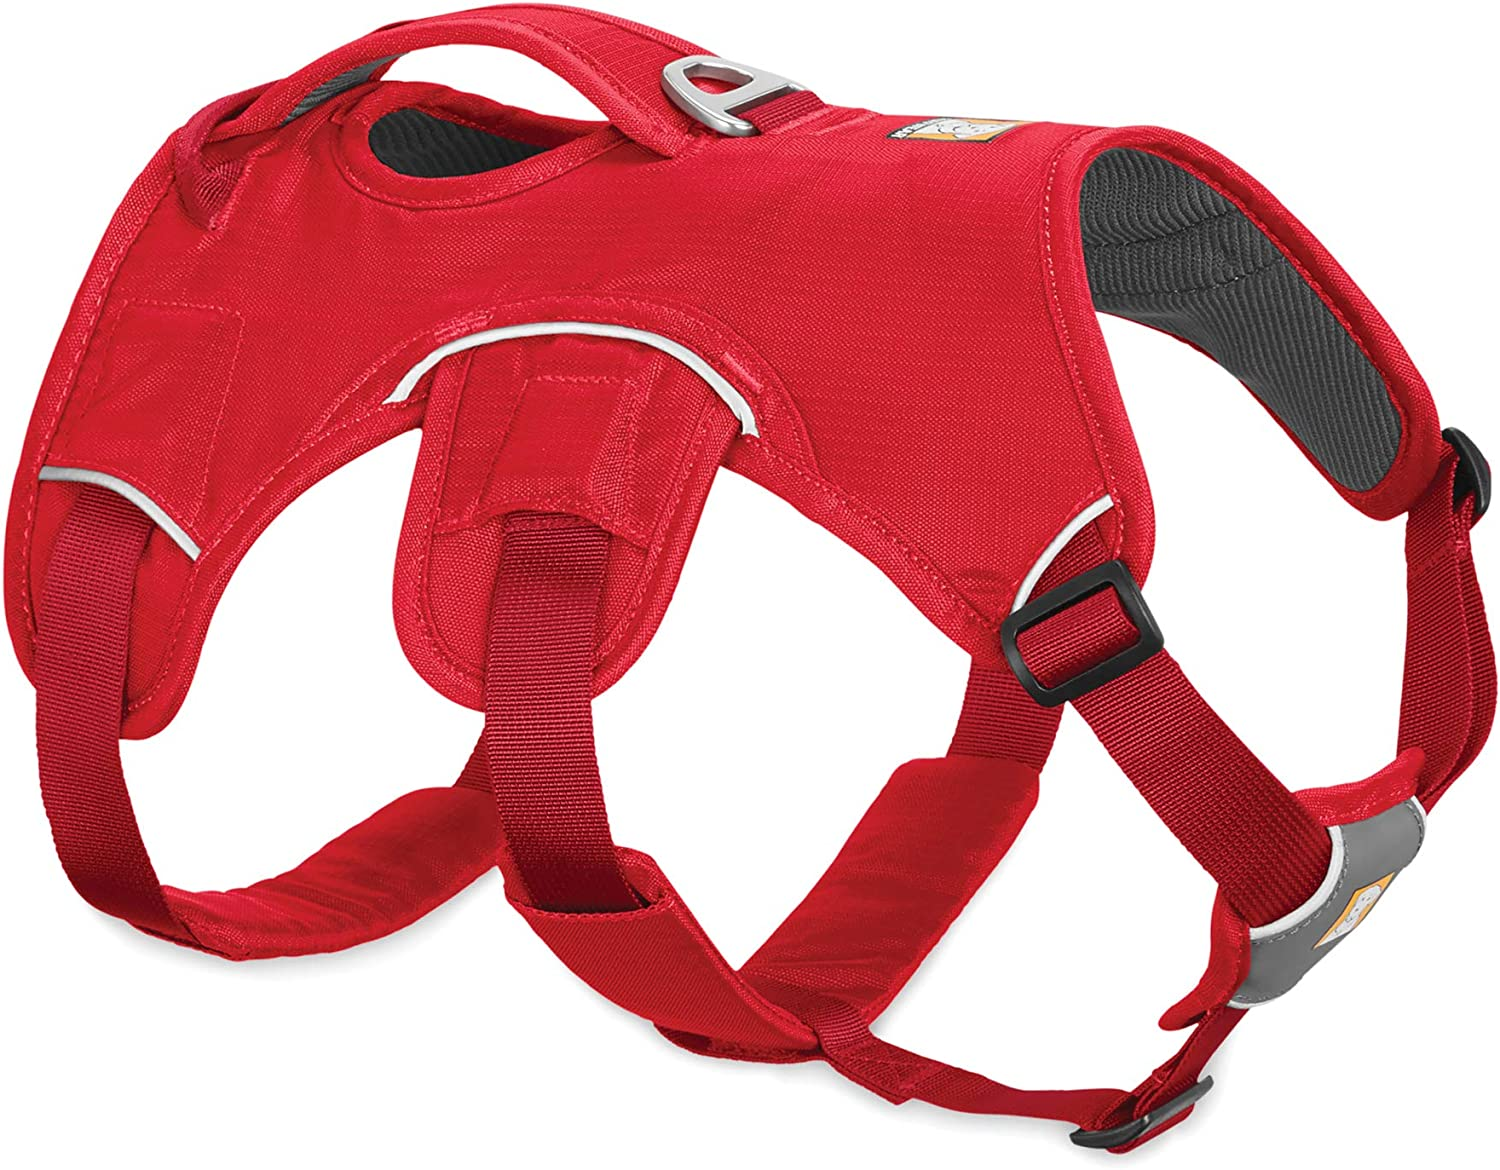 Ruffwear Web Master Multi-Use Support Harness